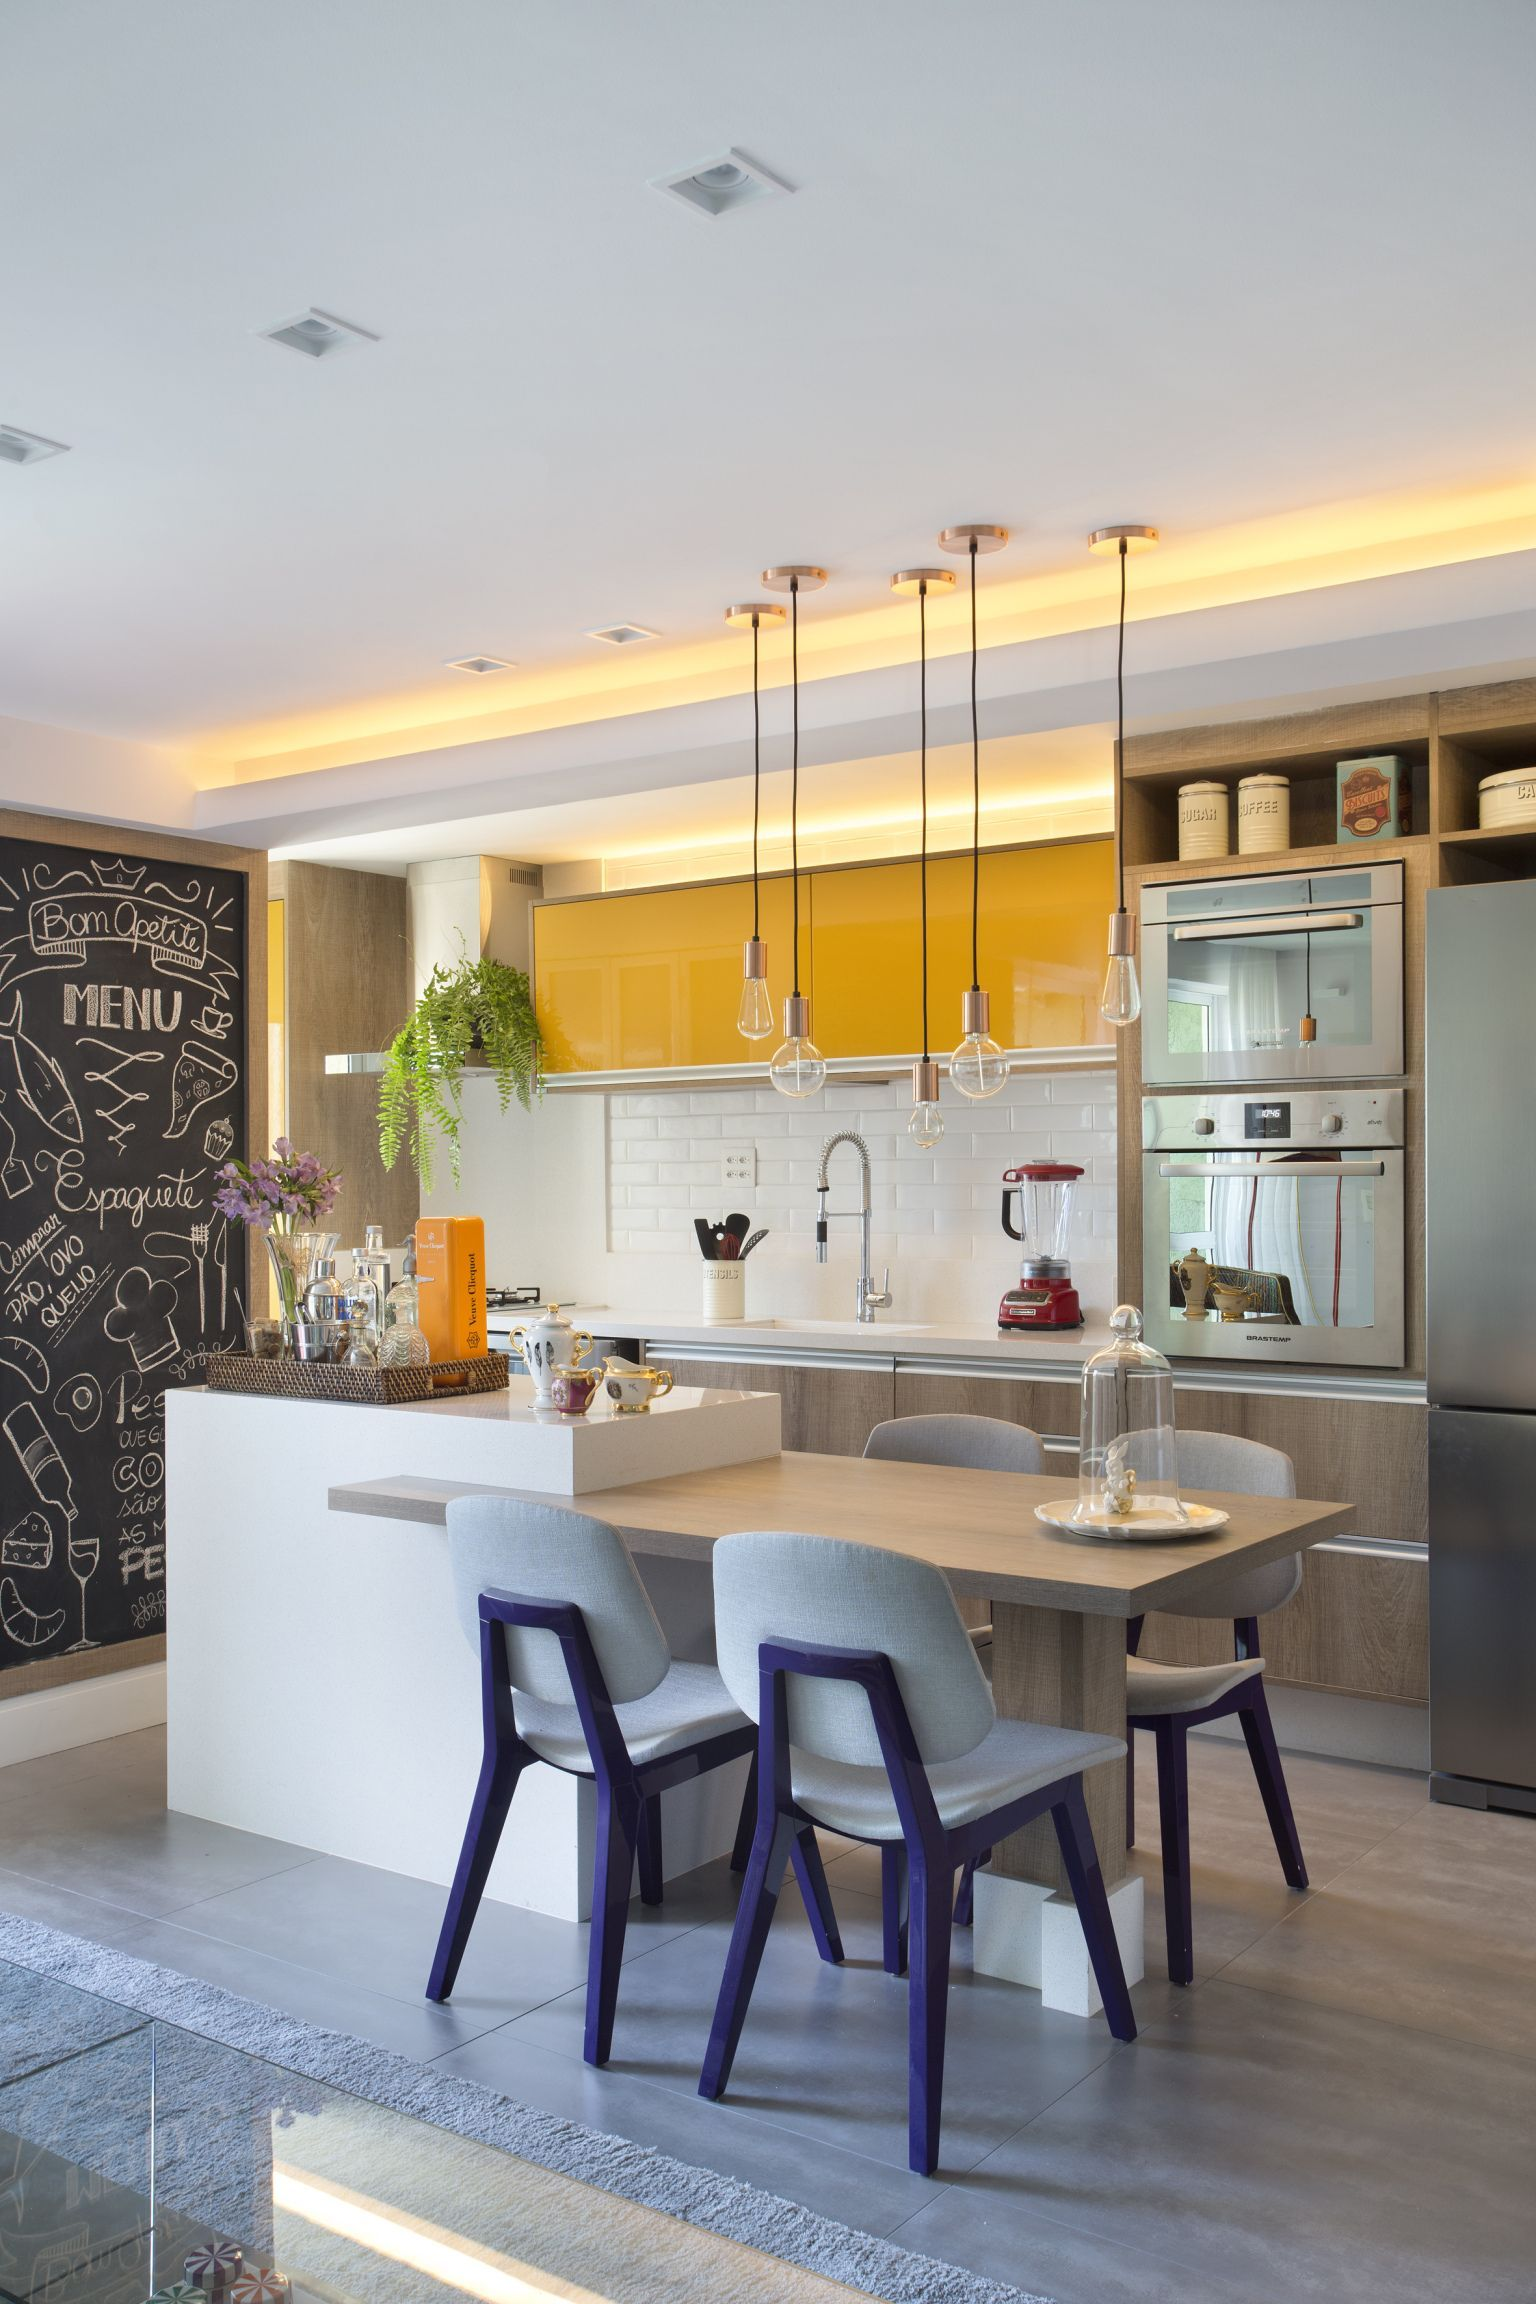 6 modern small kitchen ideas that will give a big impact on your daily mood konyhai ötletek on small kaboodle kitchen ideas id=95685